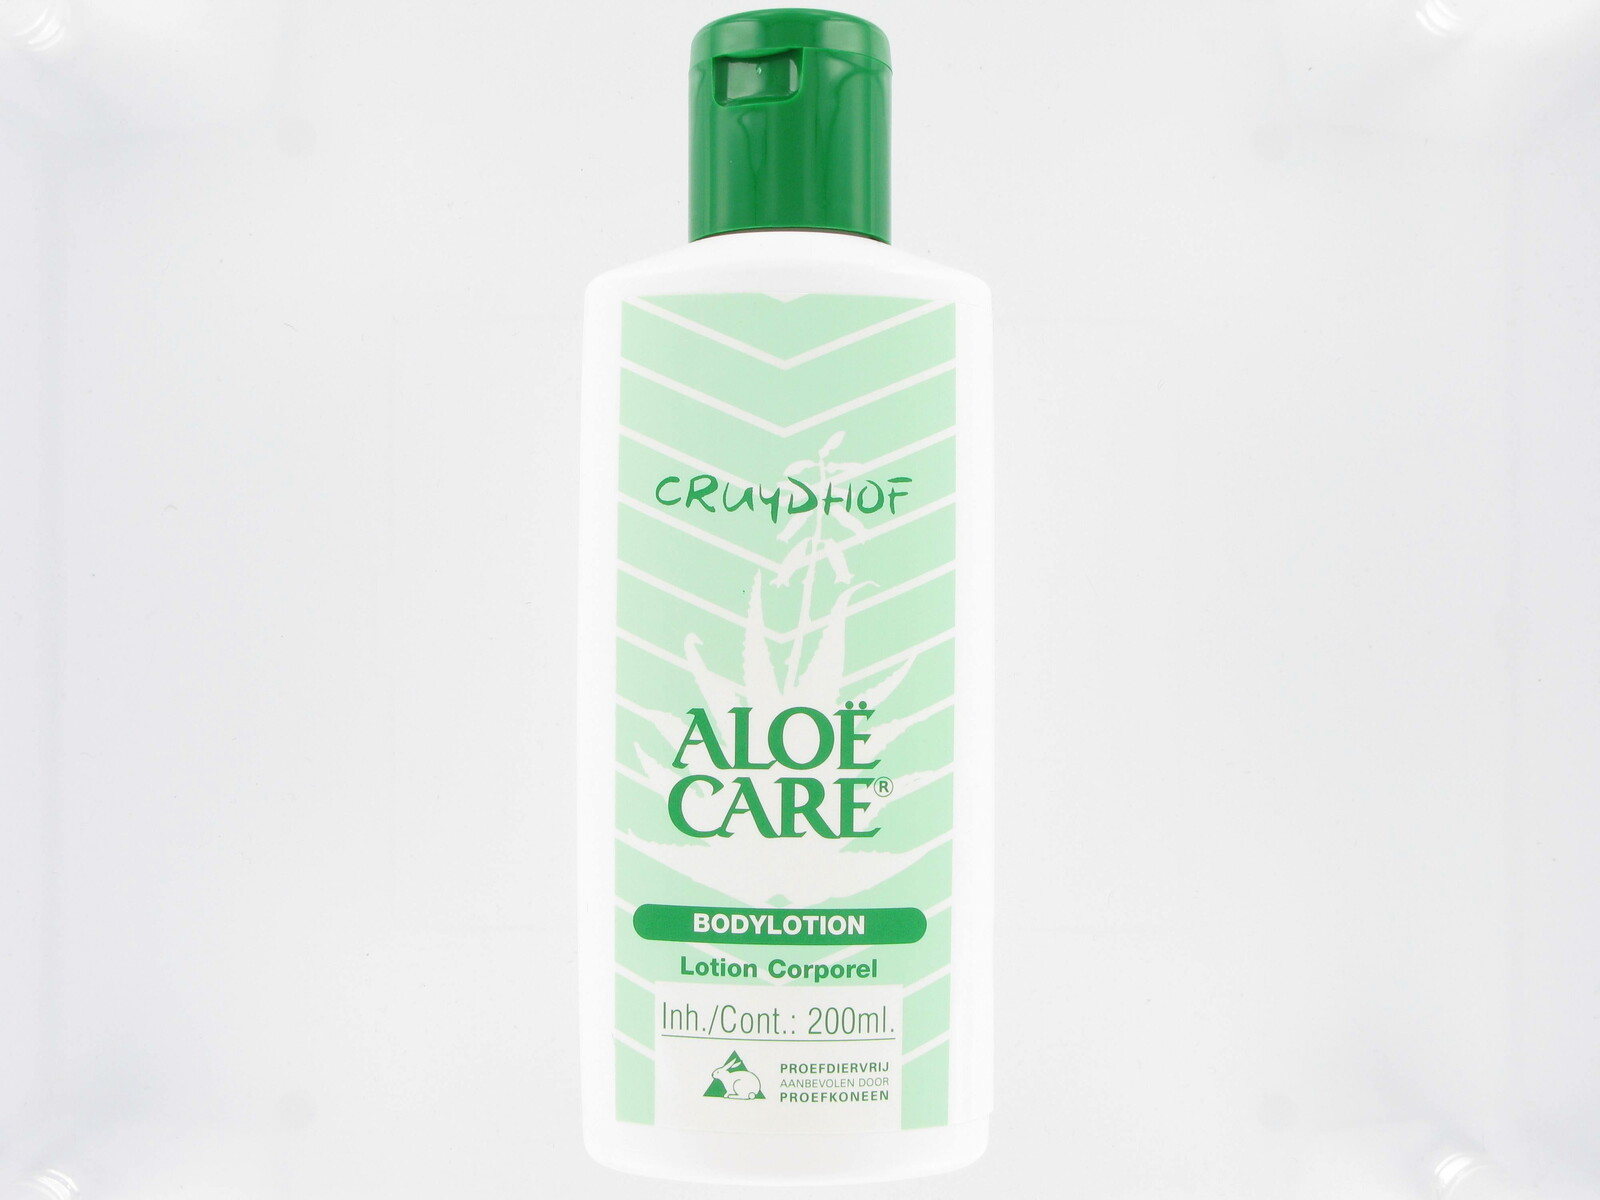 Cruydhof Aloe Care - 200 ml - Bodylotion